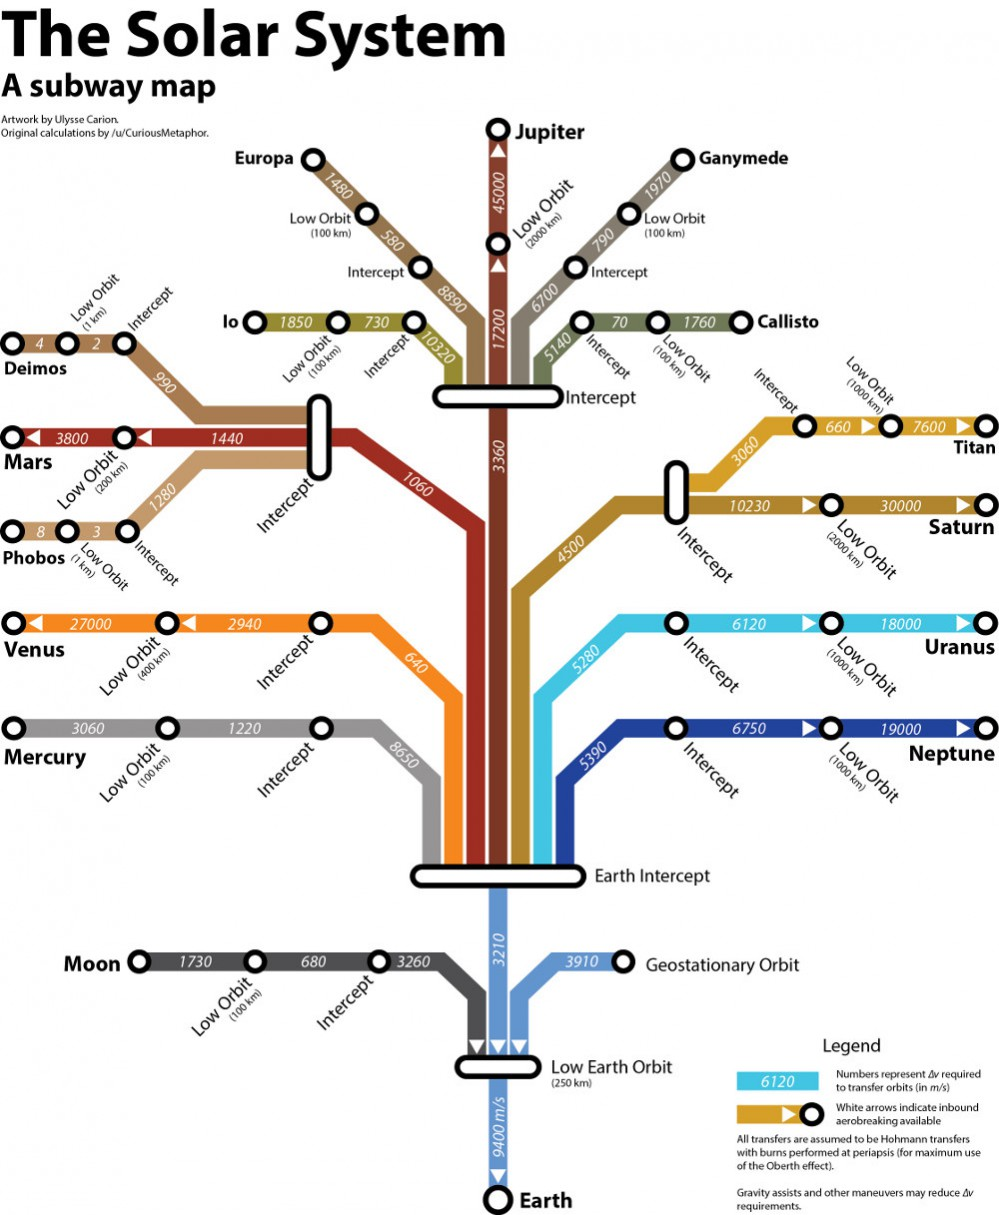 solar-system-subway-map-large